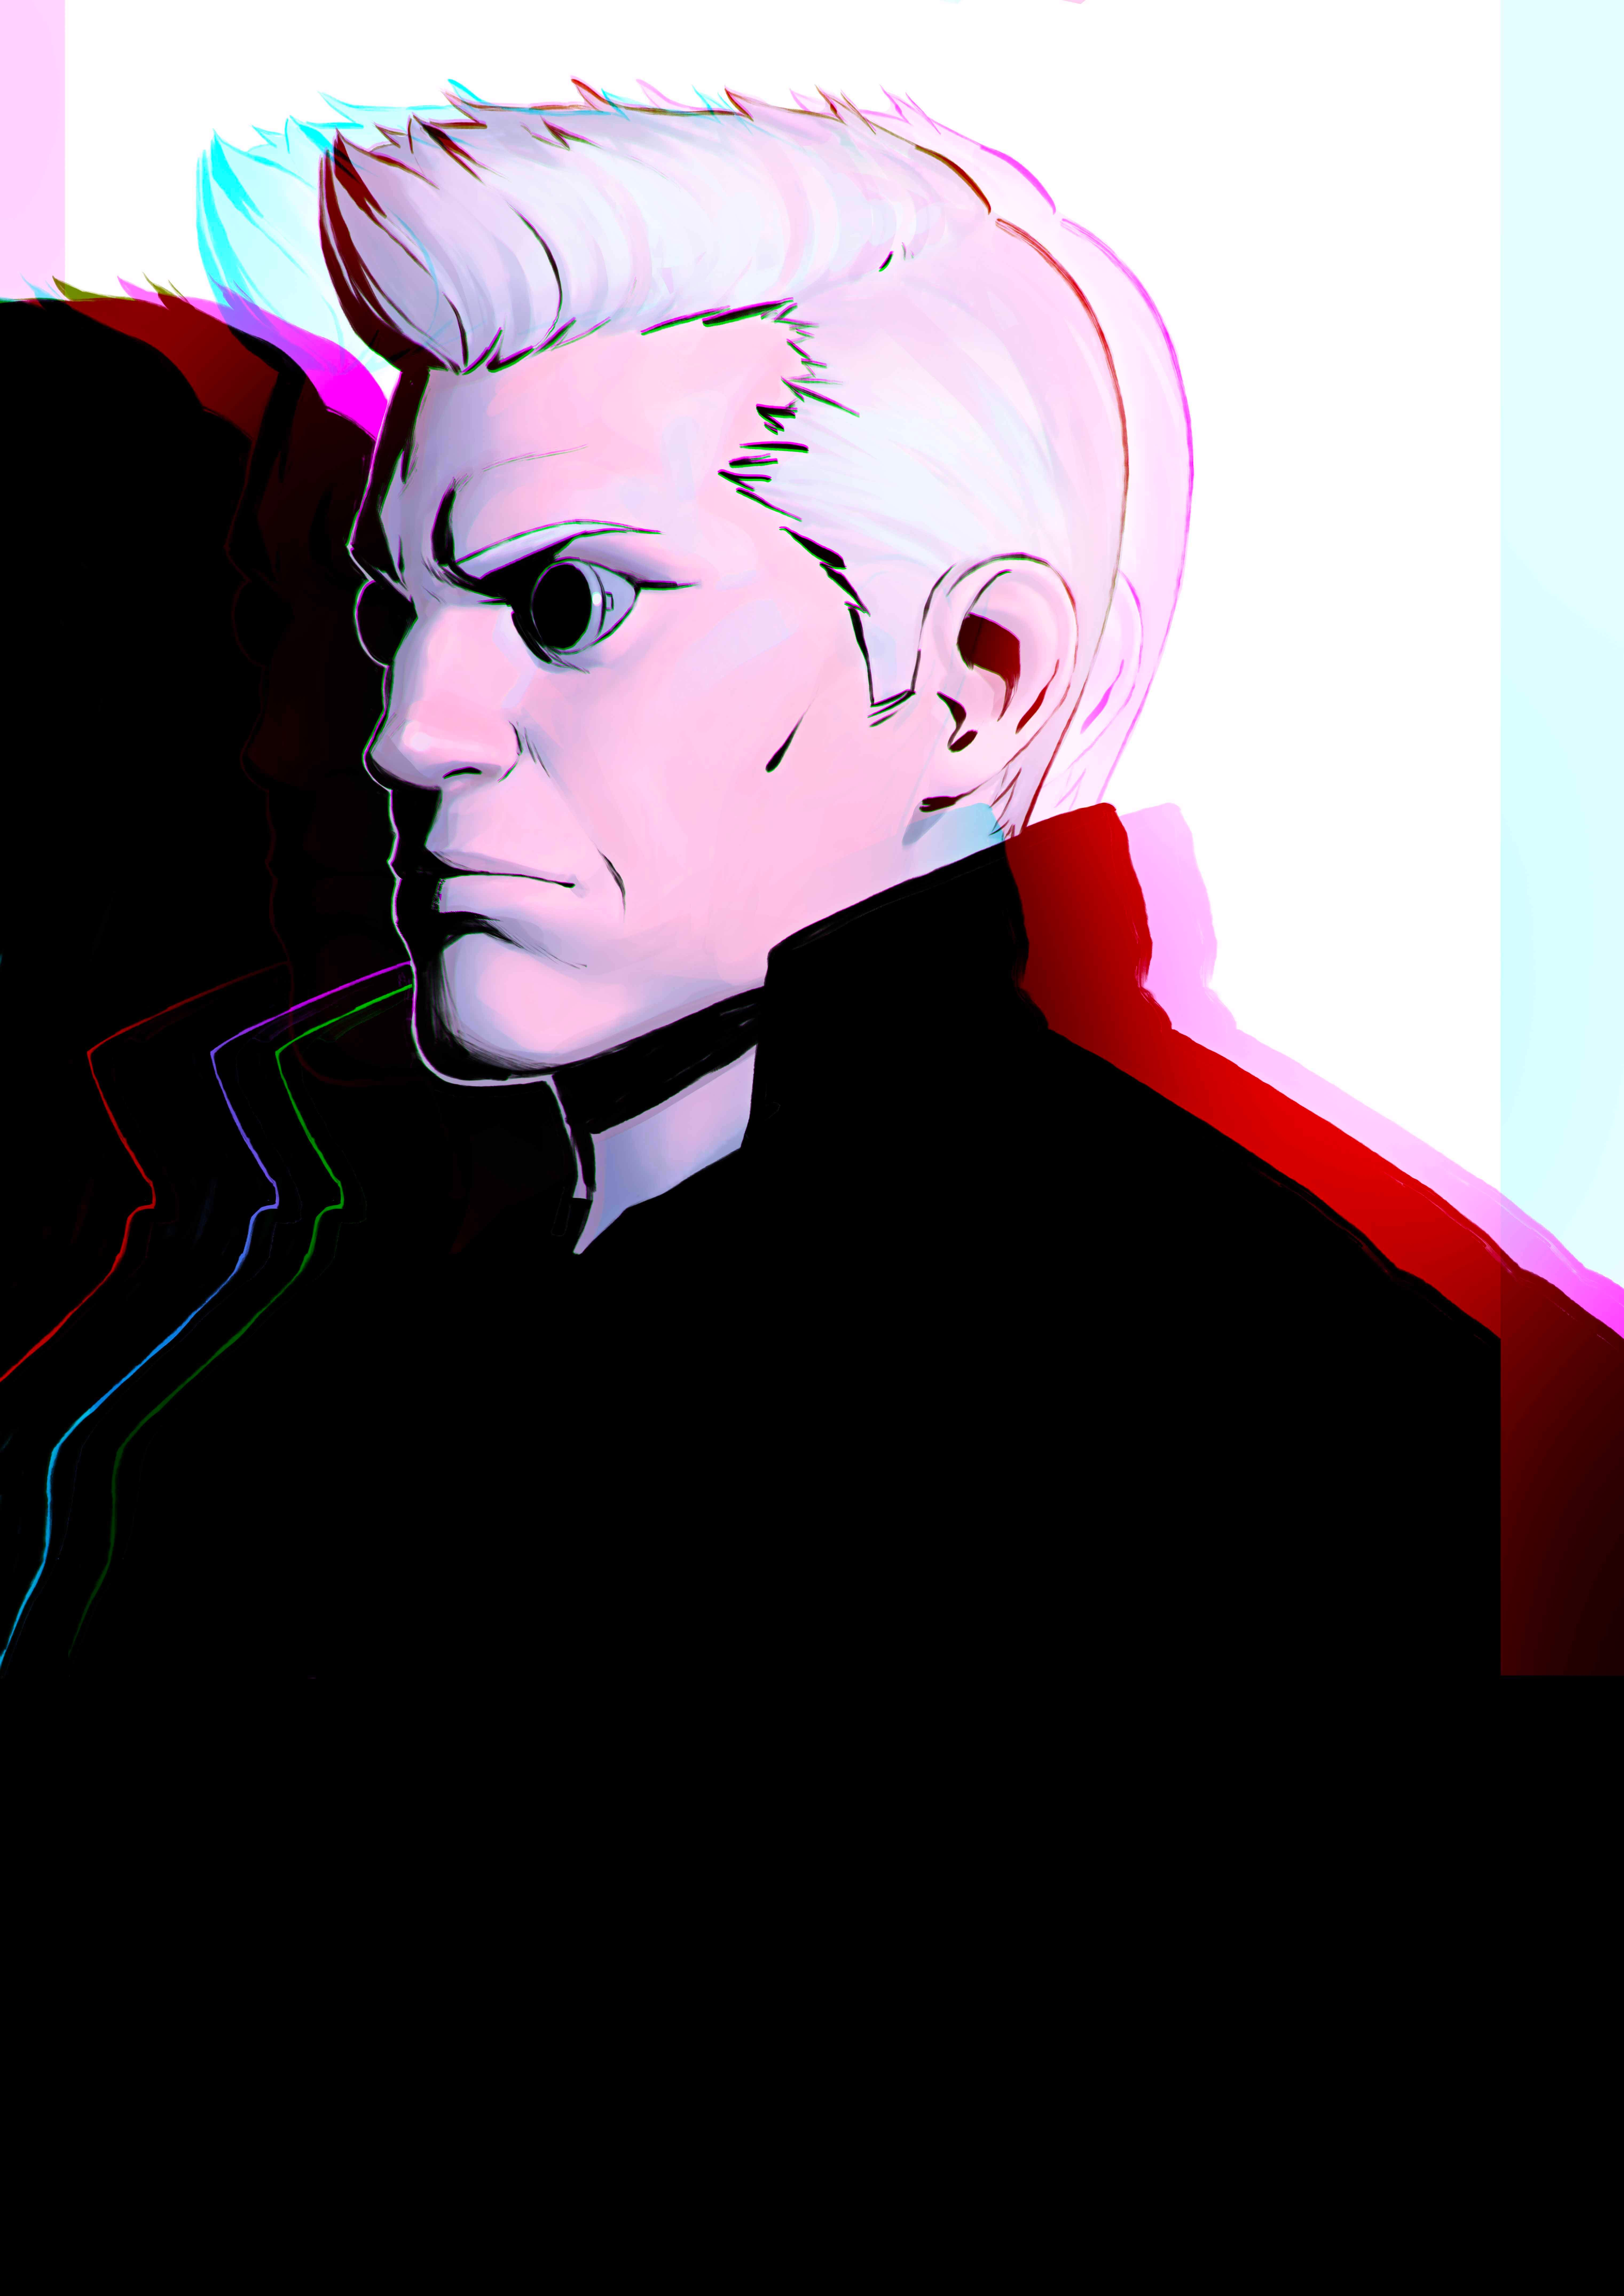 Batou Ghost In The Shell Koukaku Kidoutai Ghost In The Shell Image 2913829 Zerochan Anime Image Board